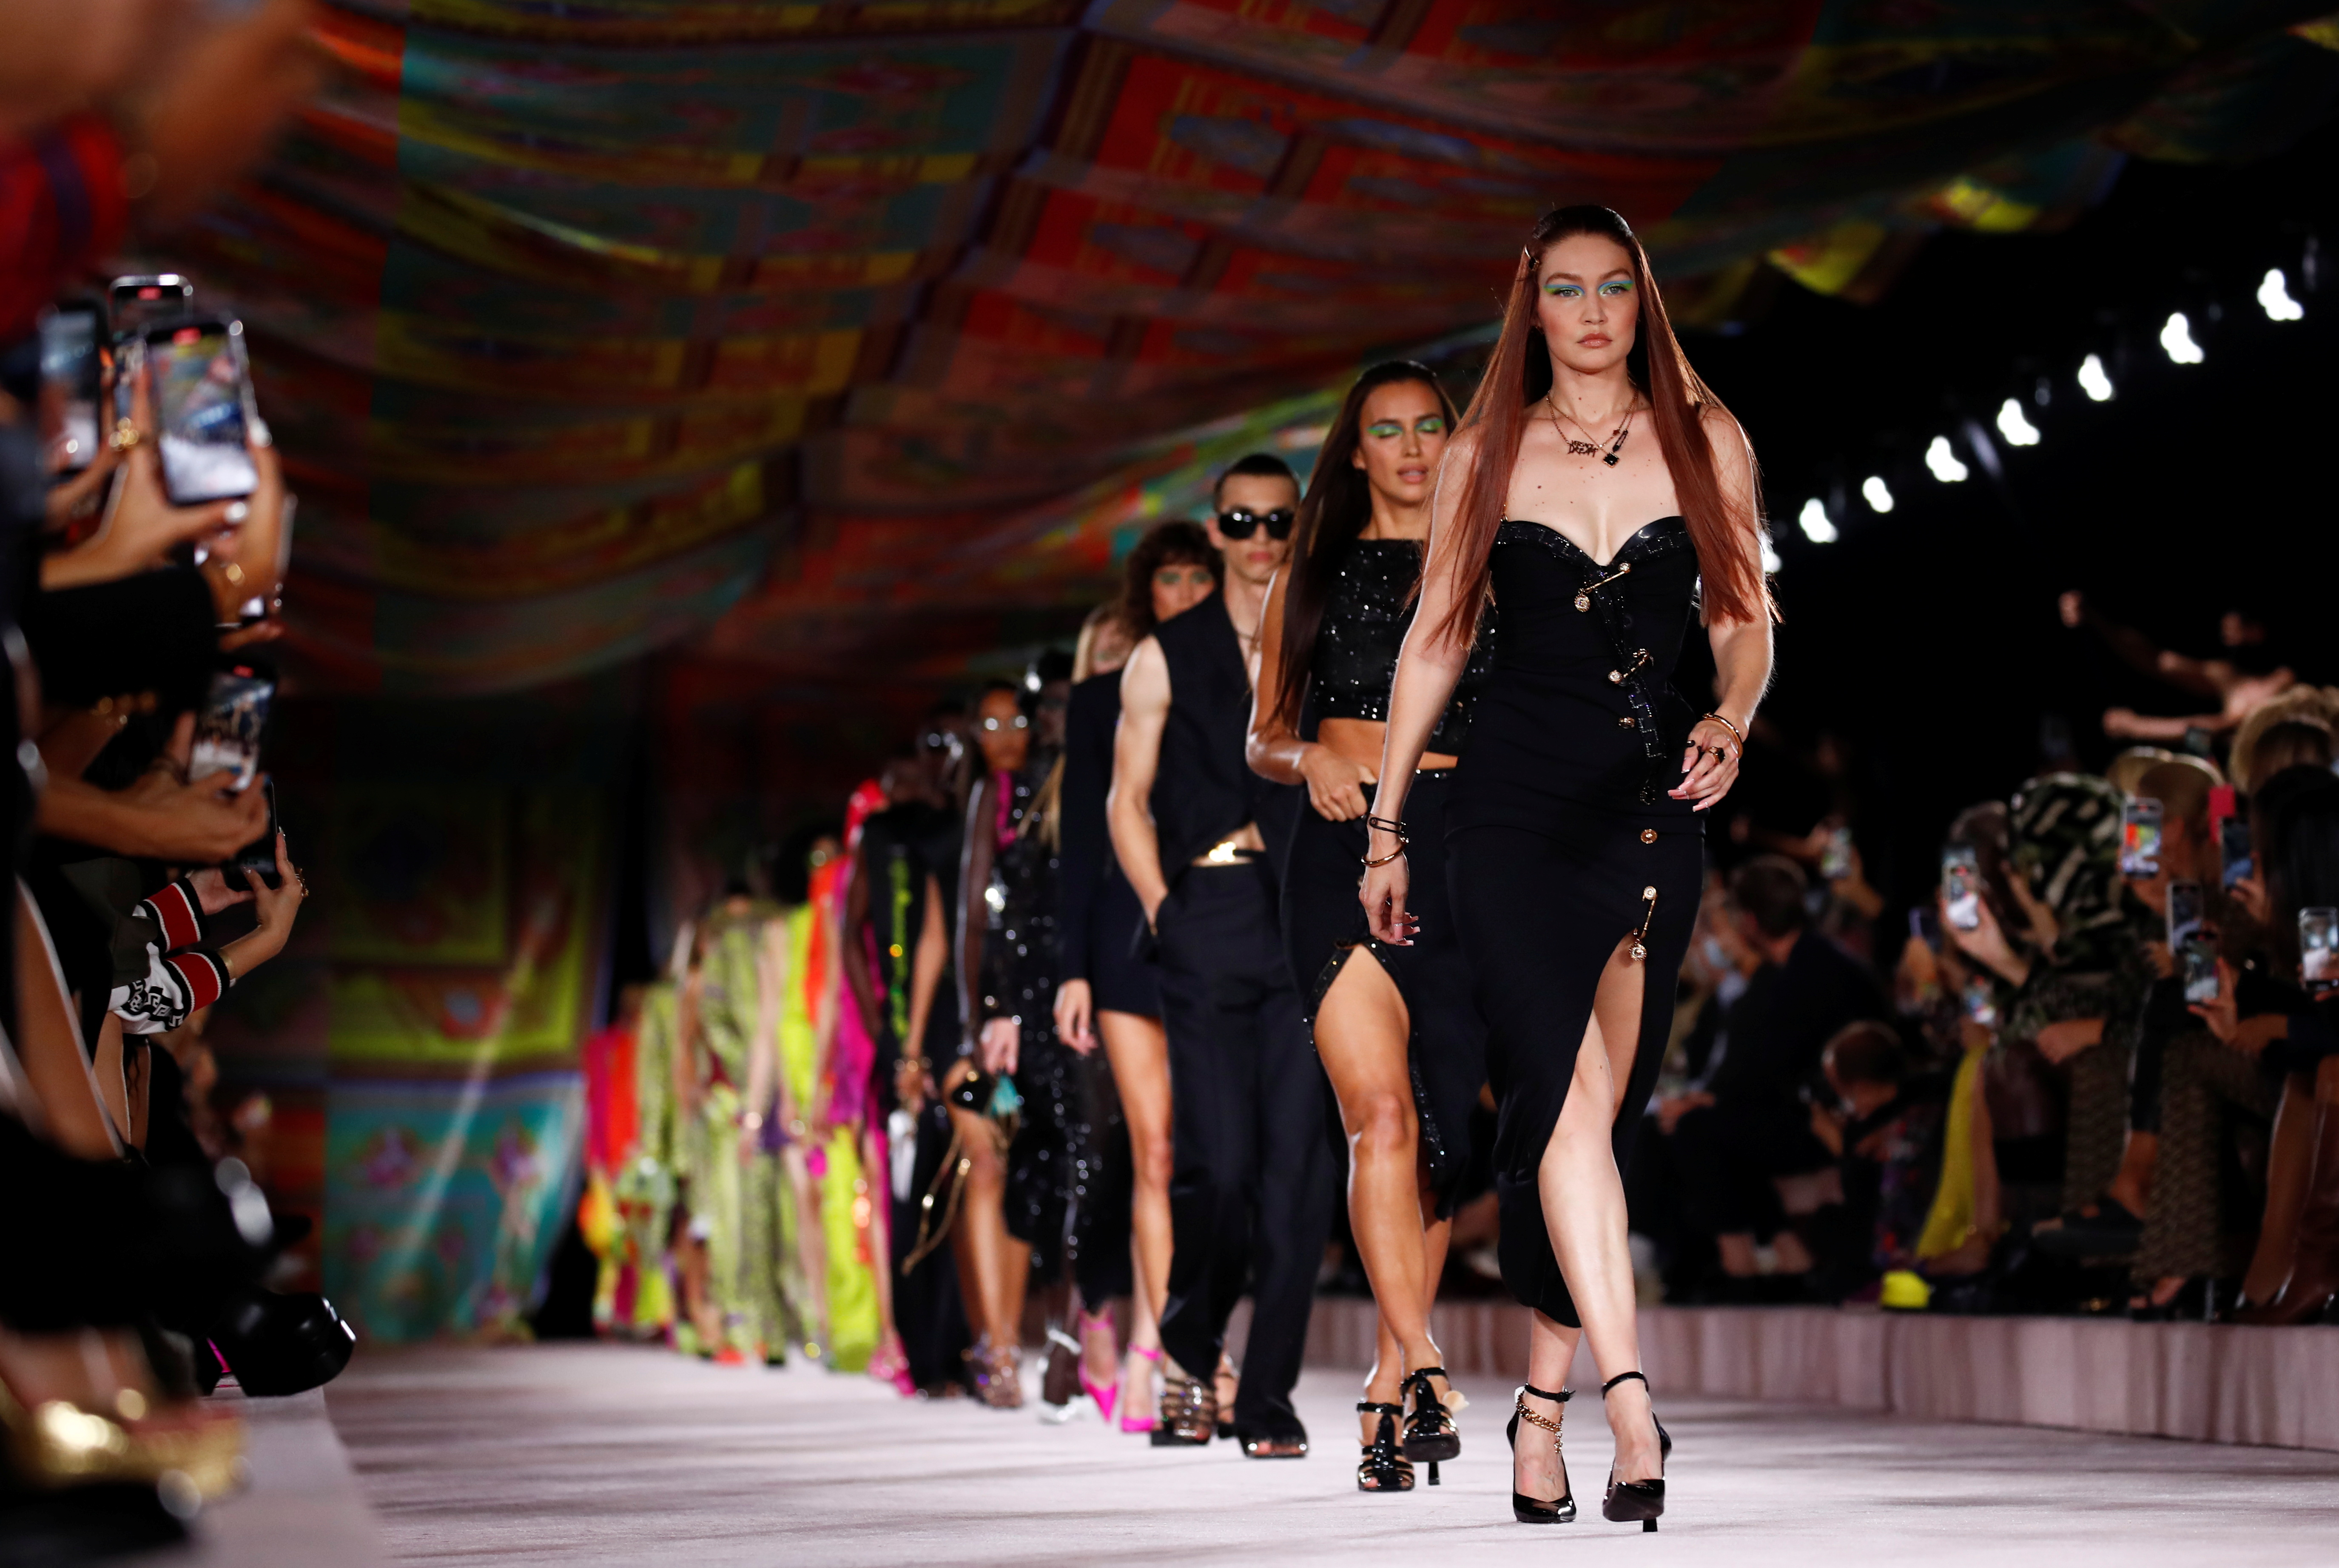 Gigi Hadid walks with models to present creations from the Versace Spring/Summer 2022 collection during Milan Fashion Week in Milan, Italy, September 24, 2021. REUTERS/Alessandro Garofalo